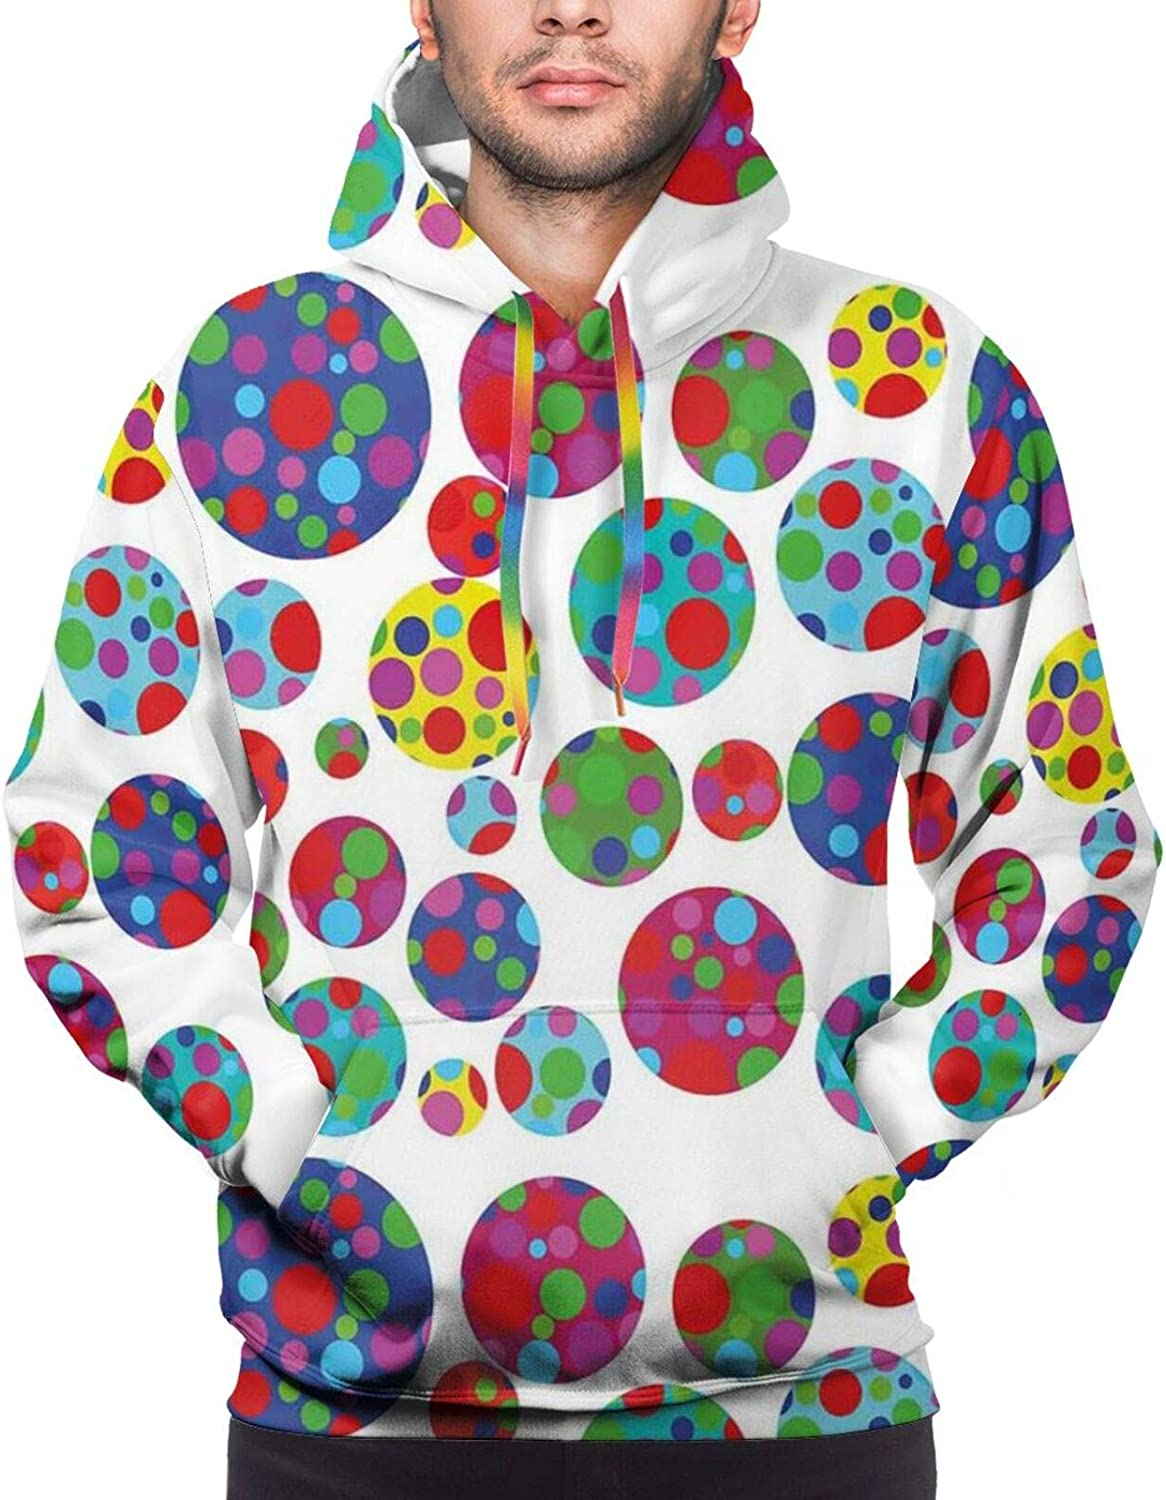 Men's Hoodies Sweatshirts,Colored Big and Little Dotted Dots Repeating Pattern Funky Graphic Illustration